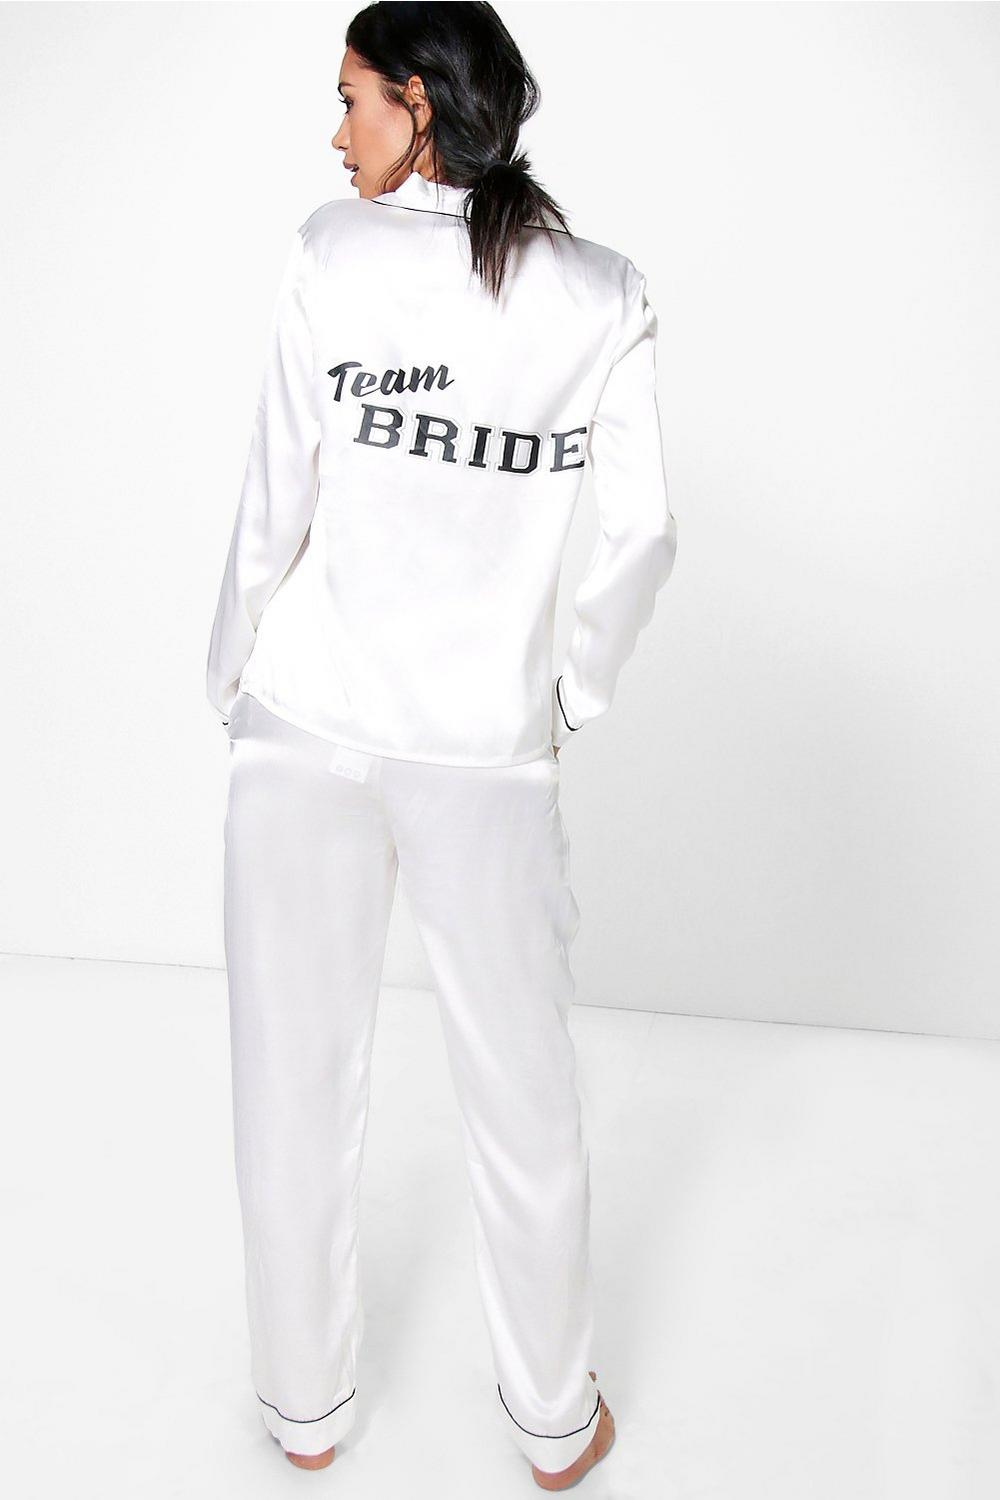 Phoebe Team Bride Satin Night shirt + Trouser Set